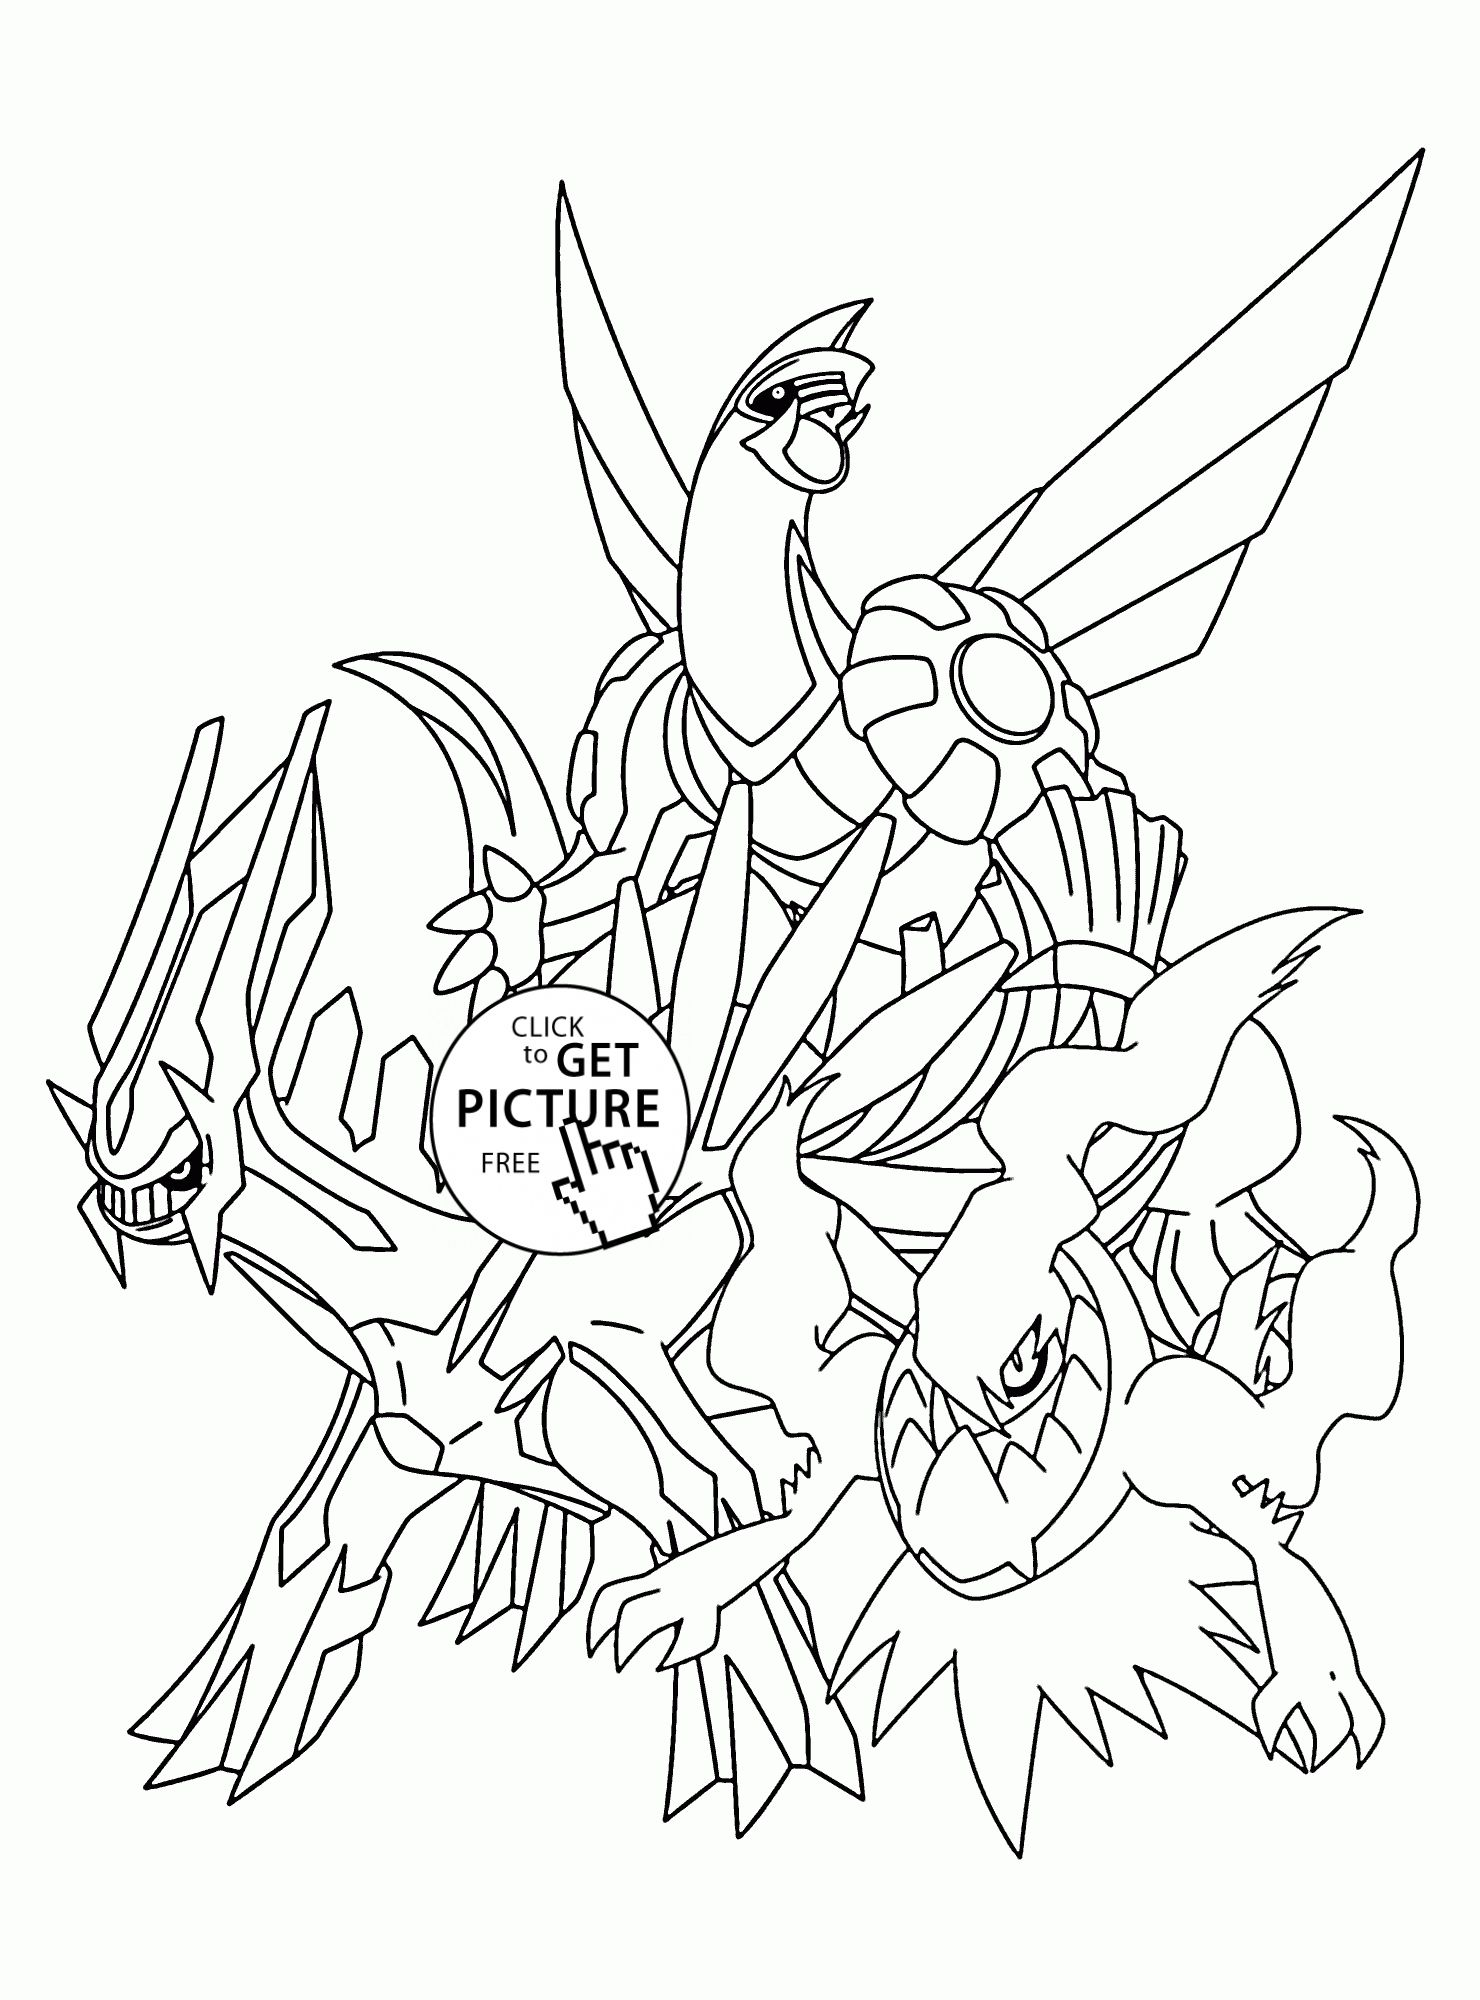 27 Inspiration Image Of Free Printable Pokemon Coloring Pages Entitlementtrap Com Pokemon Coloring Pages Pokemon Coloring Pokemon Coloring Sheets